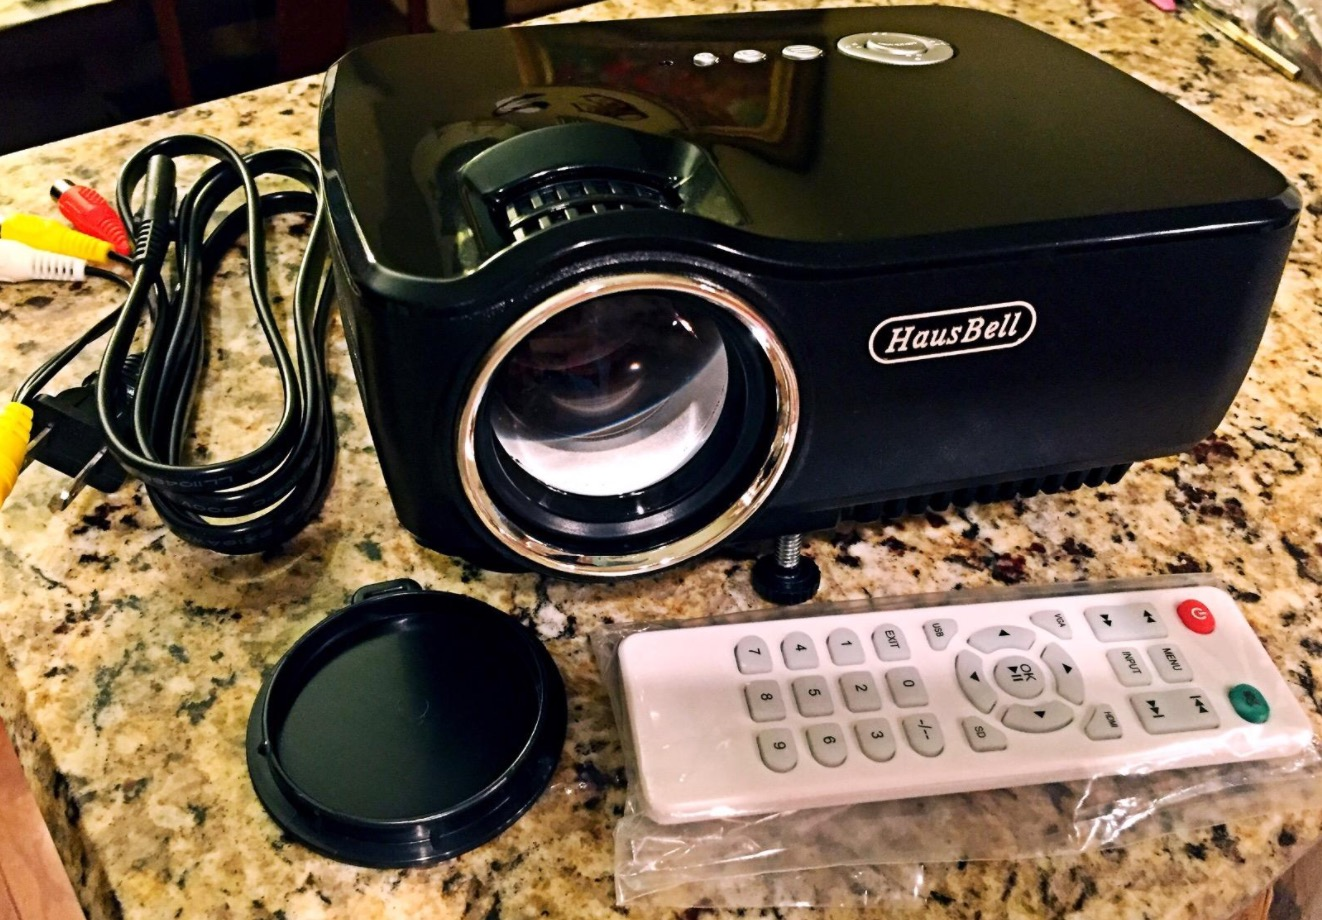 Hausbell Portable Projector